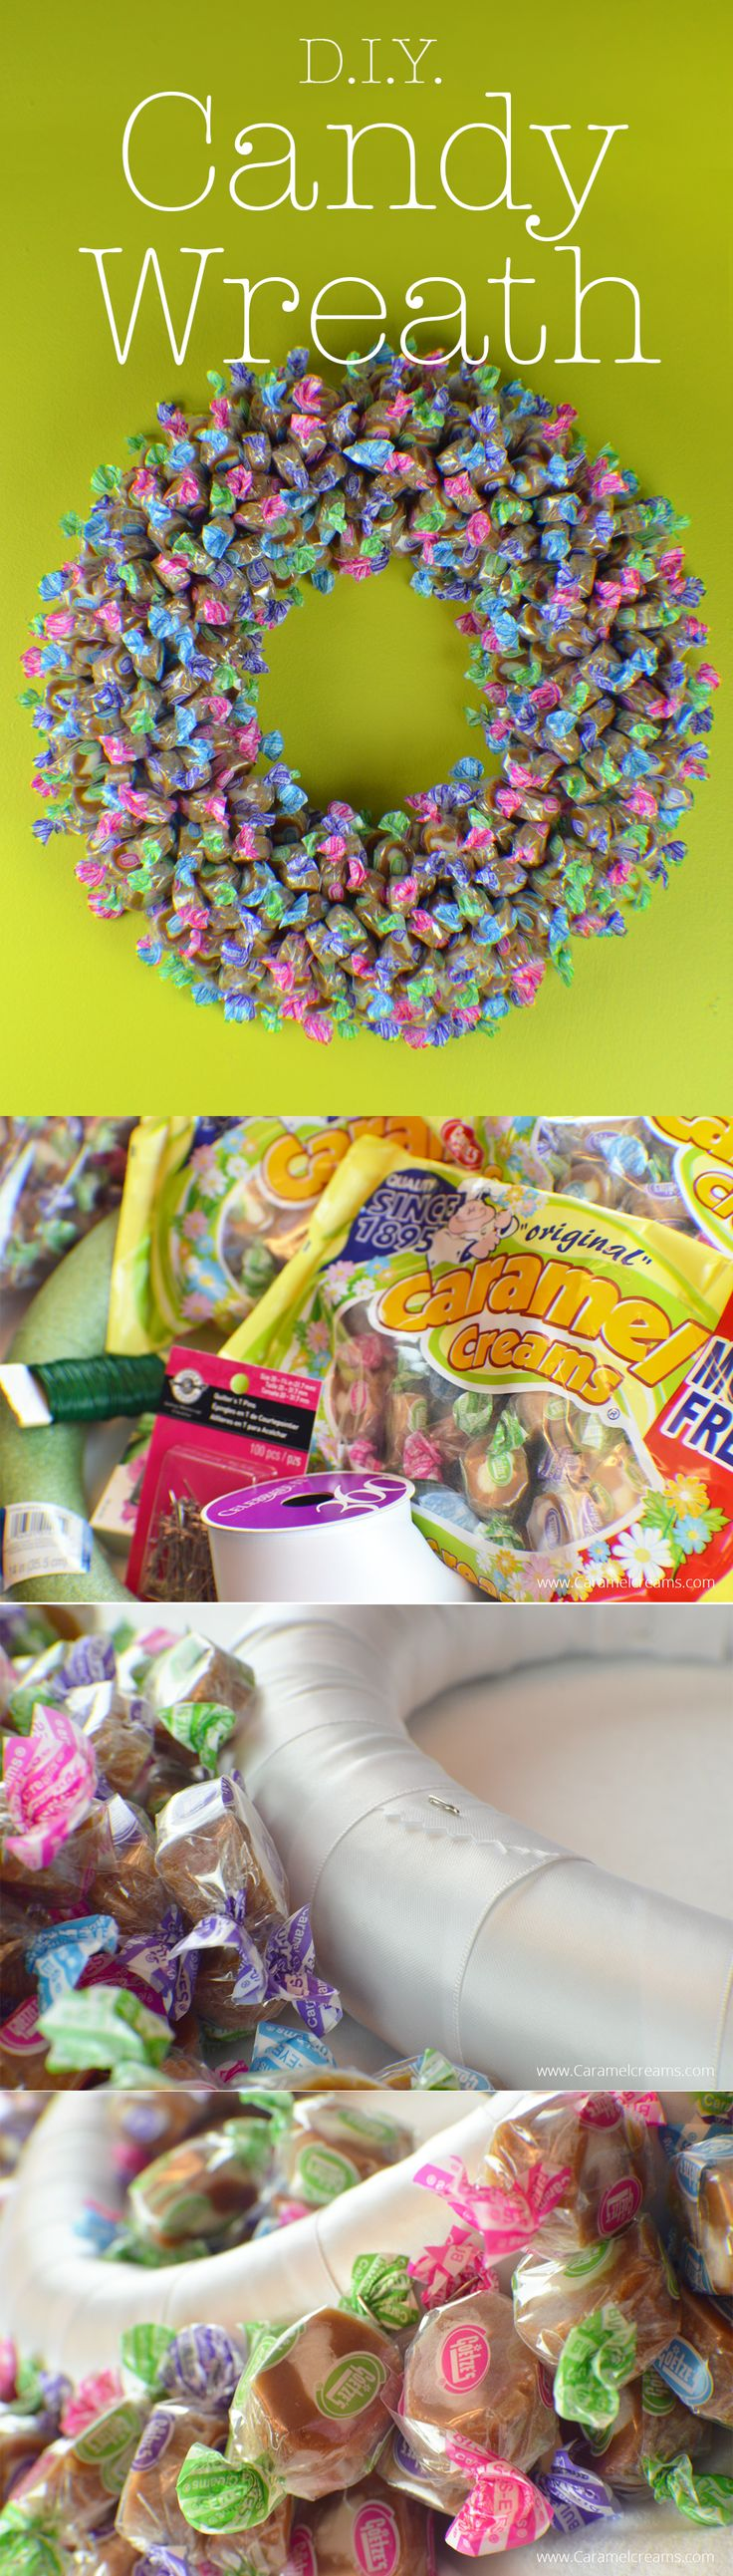 25 best ideas about candy wreath on pinterest snowflake. Black Bedroom Furniture Sets. Home Design Ideas